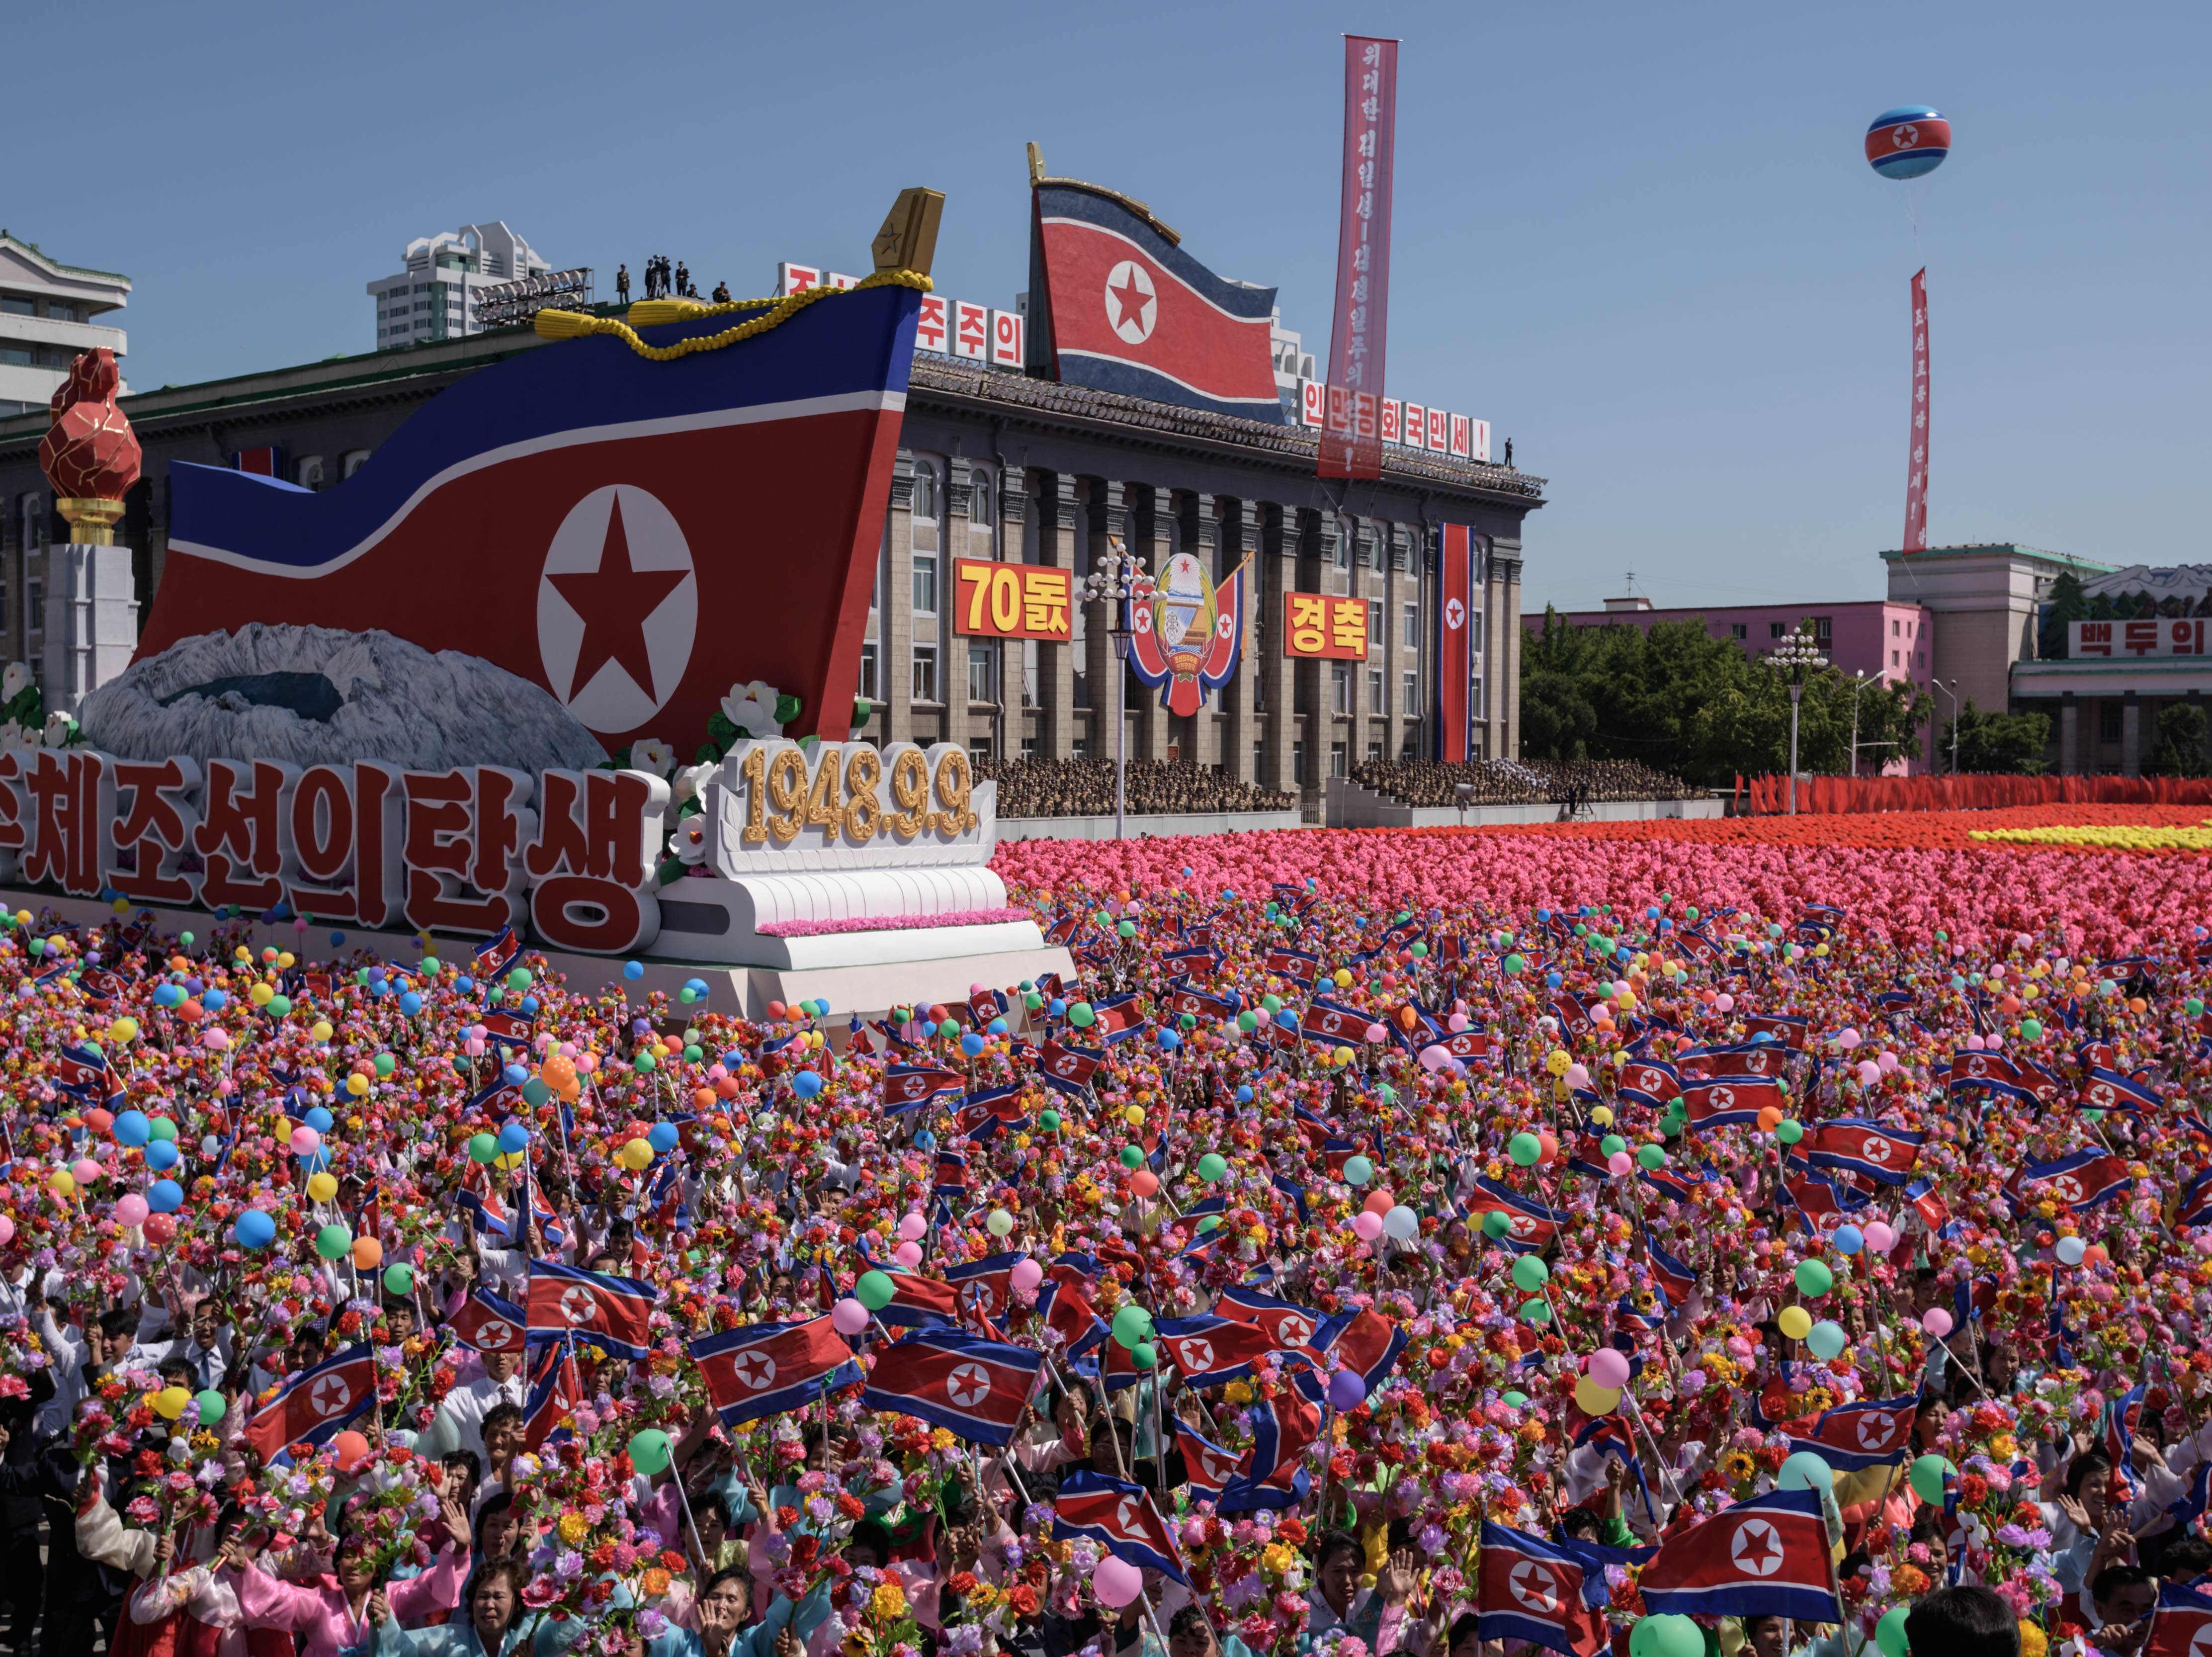 Participants wave flowers as they march past a balcony from where North Korea's leader Kim Jong Un was watching, during a mass rally on Kim Il Sung square in Pyongyang on Sept. 9, 2018. North Korea held a military parade to mark its 70th birthday, but refrained from showing off the intercontinental ballistic missiles that have seen it hit with multiple international sanctions.